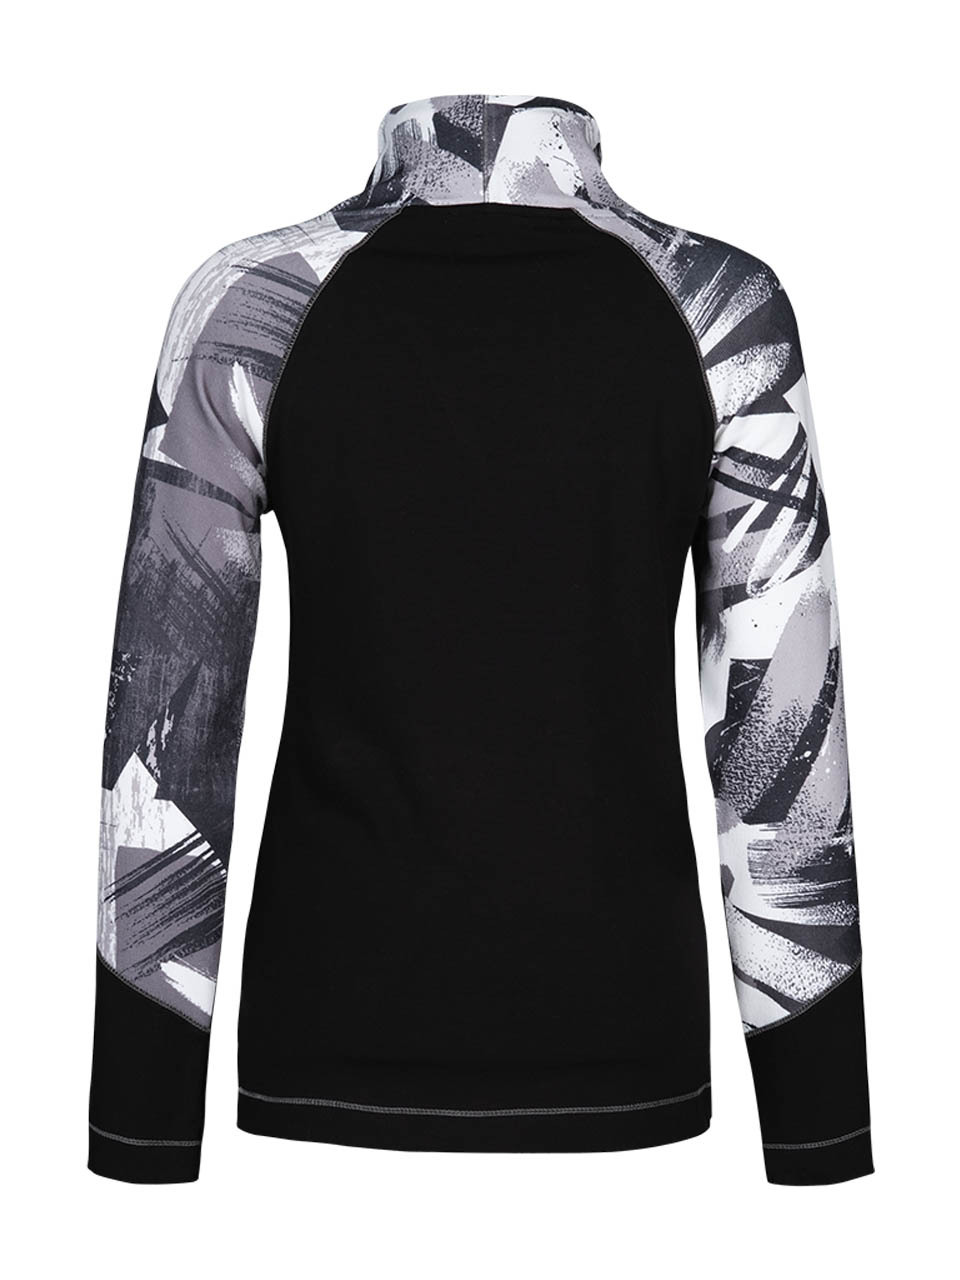 Simply Art Dolcezza: Outlined Bodice Abstract Art Layer No. 3 Tunic (Few Left!)